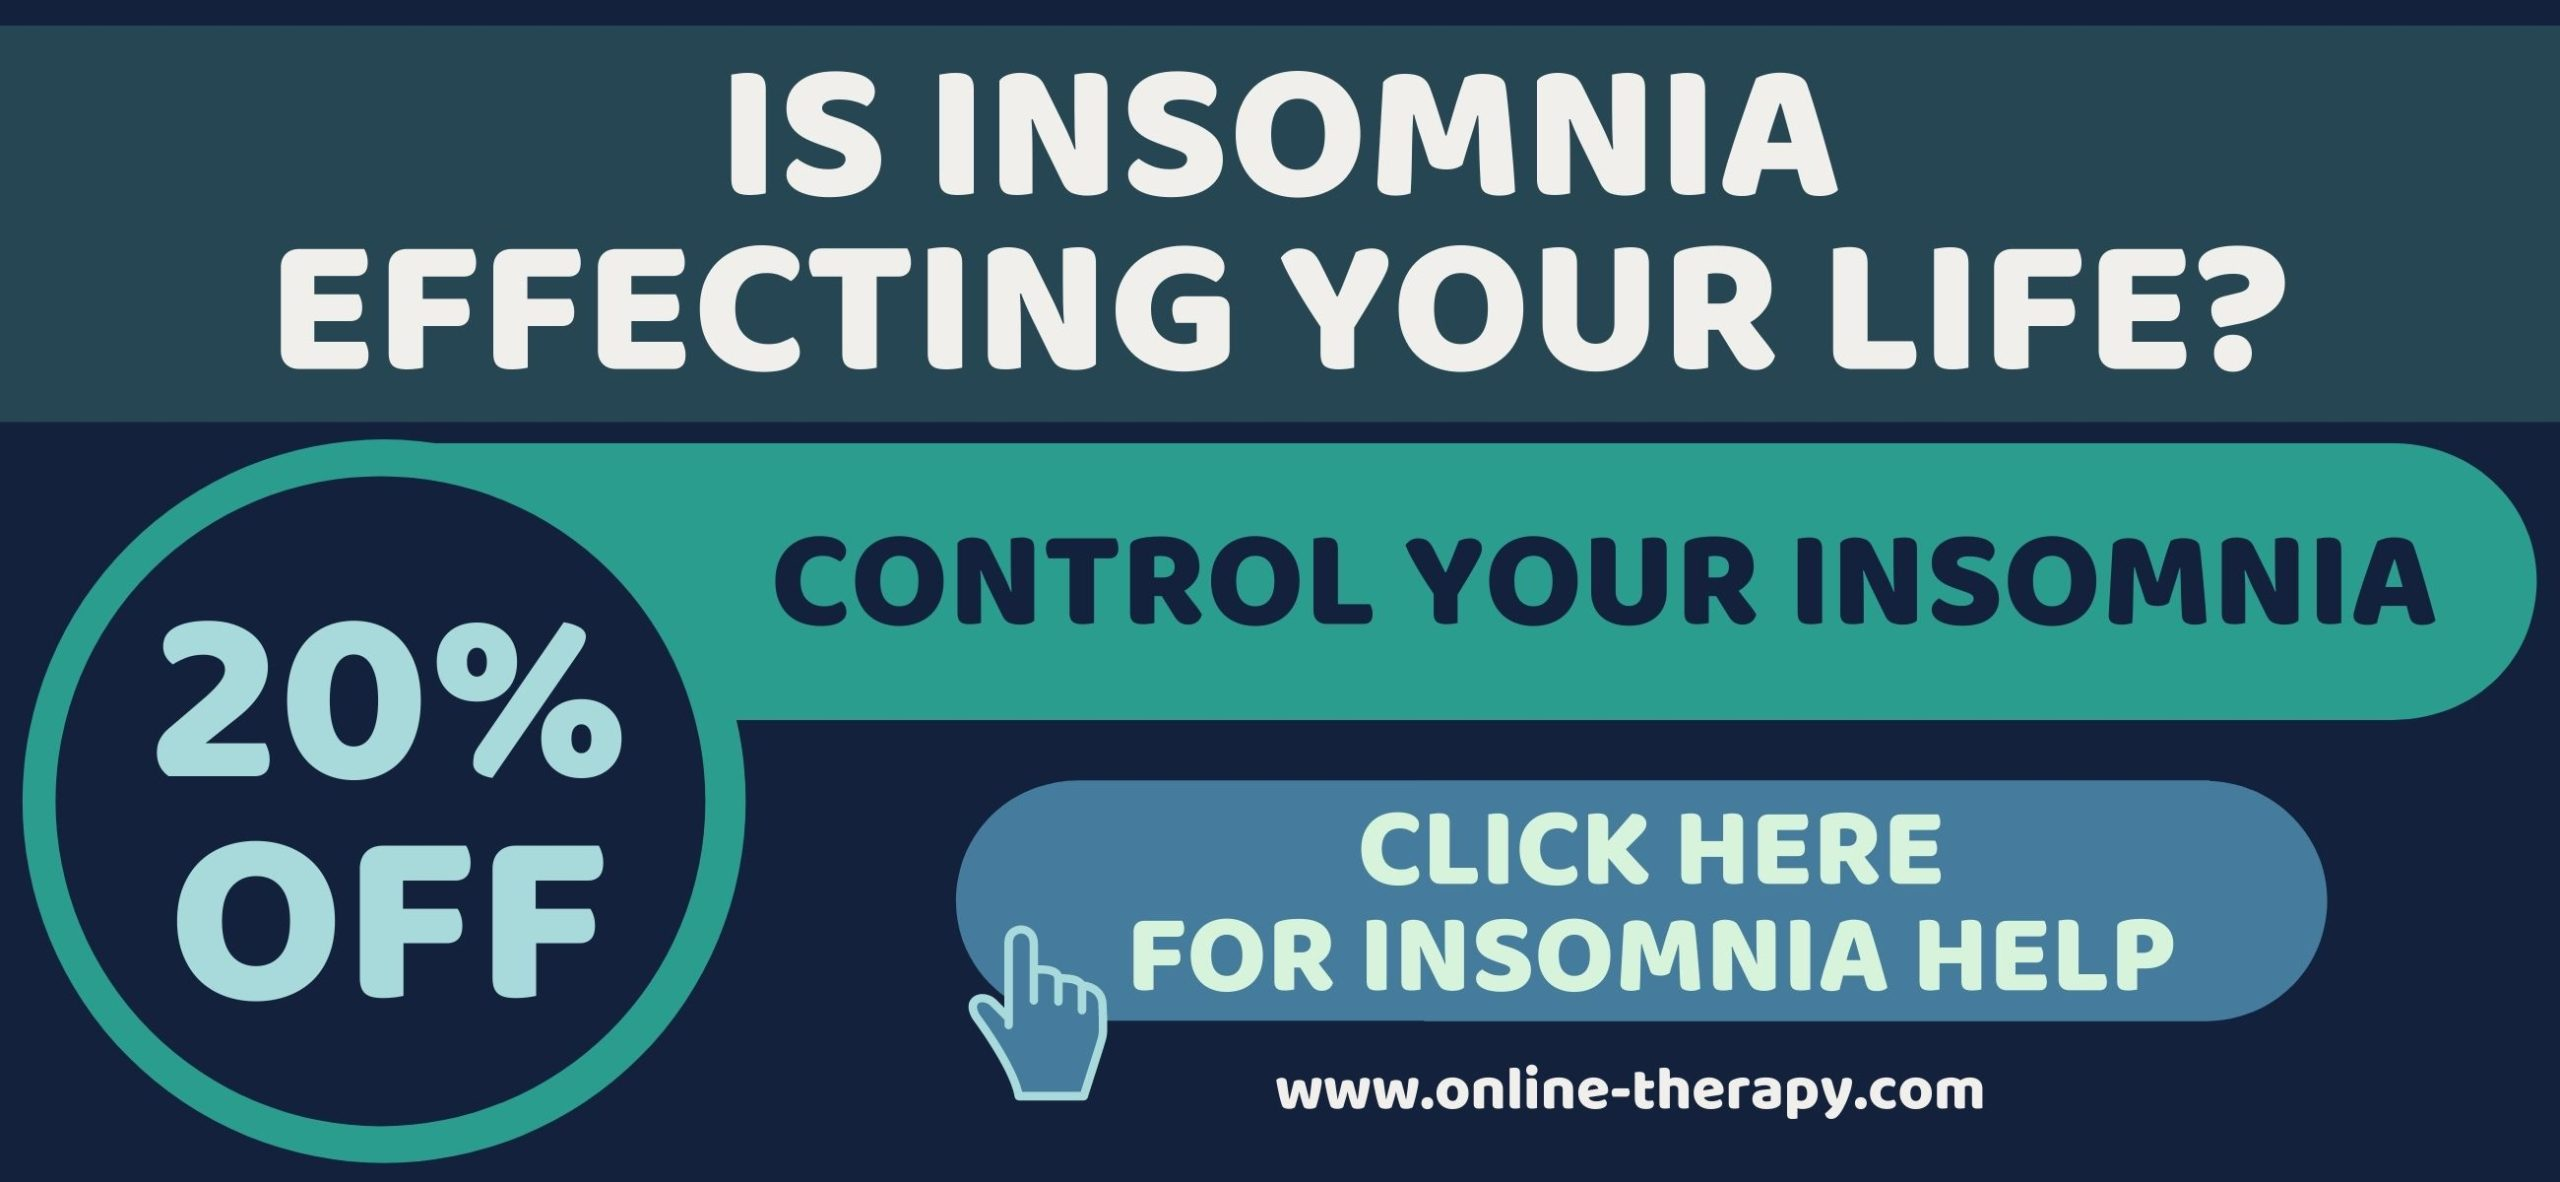 IS INSOMNIA EFFECTING YOUR LIFE